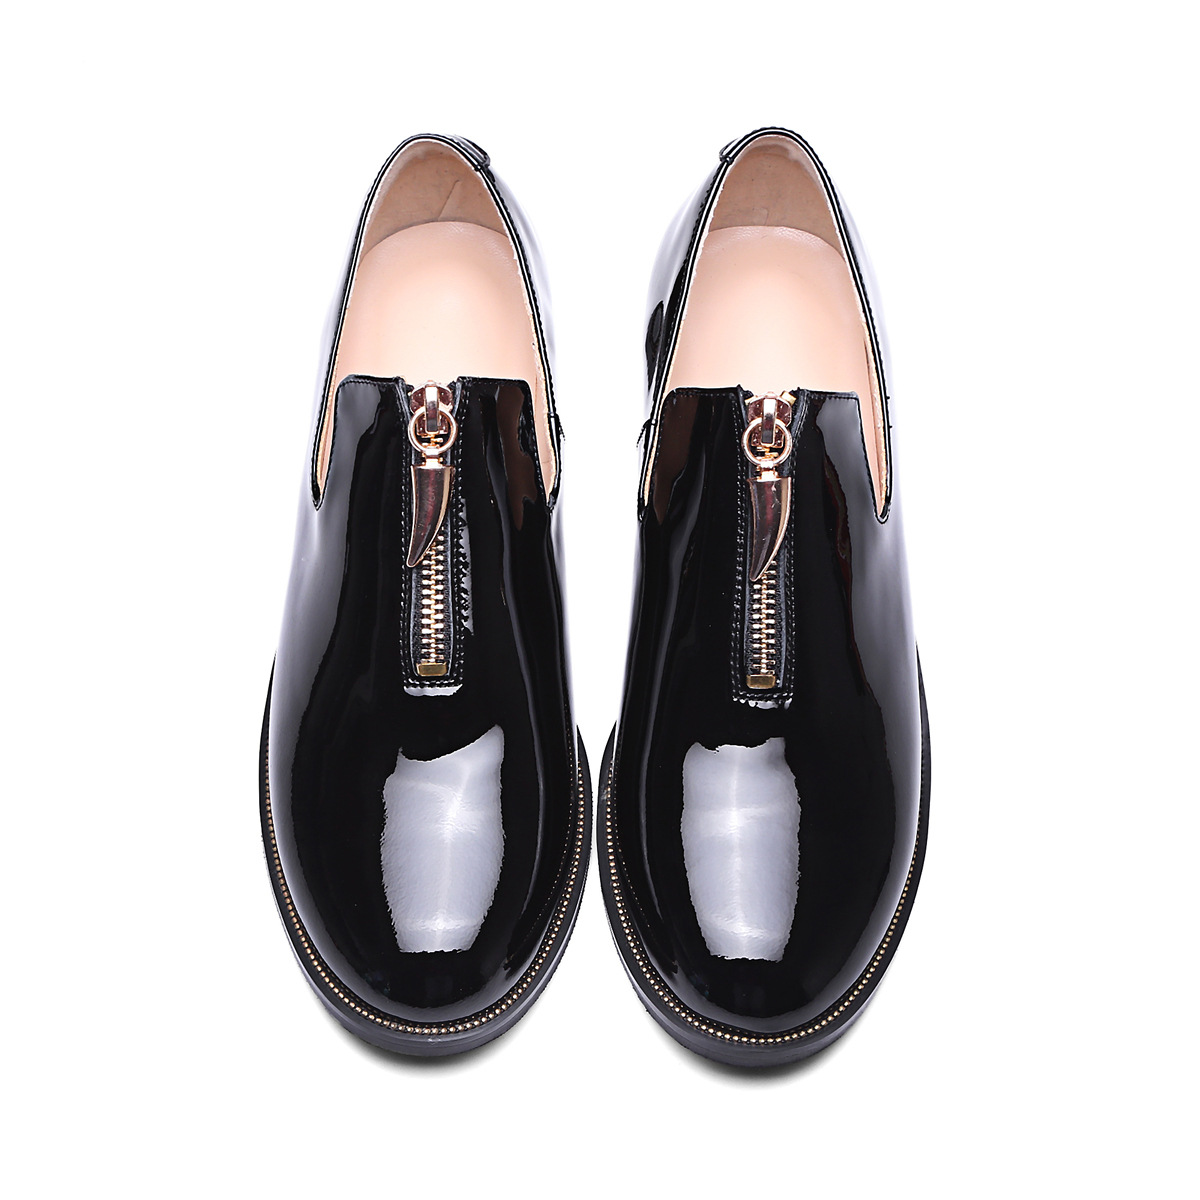 2017 New loafers Patent Genuine Leather Gold Metal Zipper Women Slip on Shoes Female Flats Oxford Shoes Hot Big Size new 2016 european brand designer winter warm flats black leather rabbit fur loafers metal decorated hot sell flat shoes women